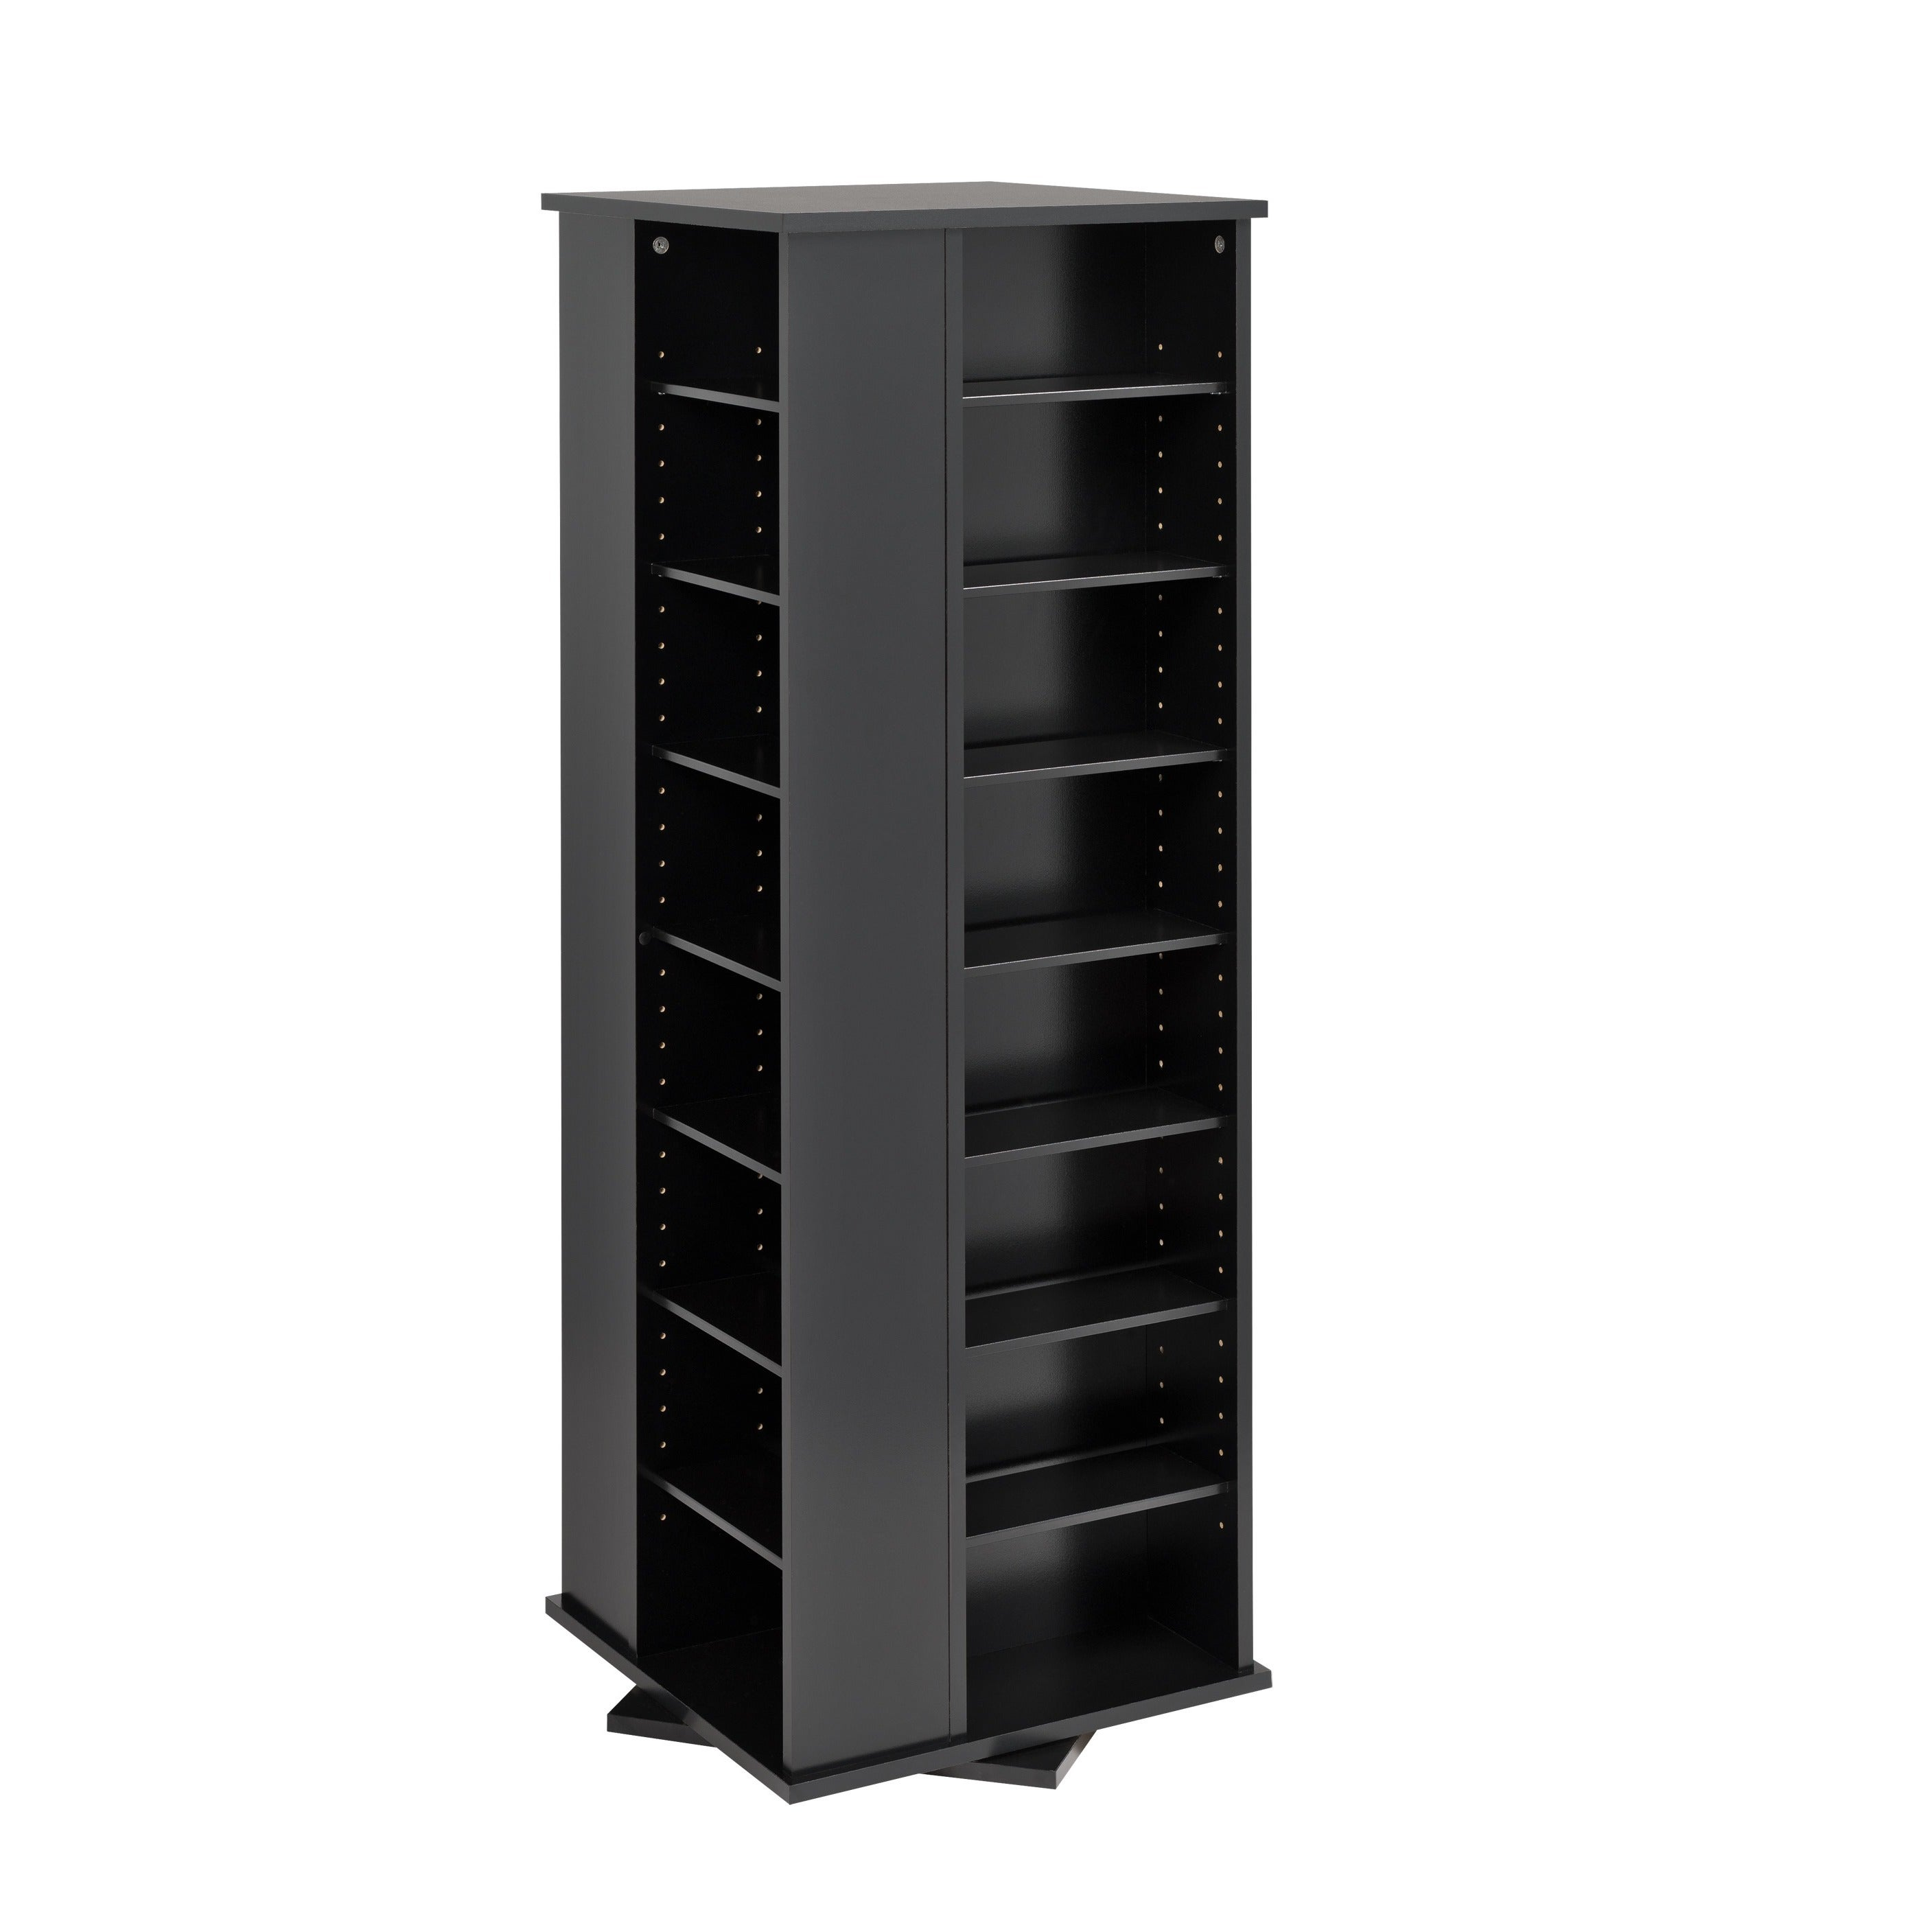 Beau Shop Spinning Media Storage Tower   Free Shipping Today   Overstock.com    457514